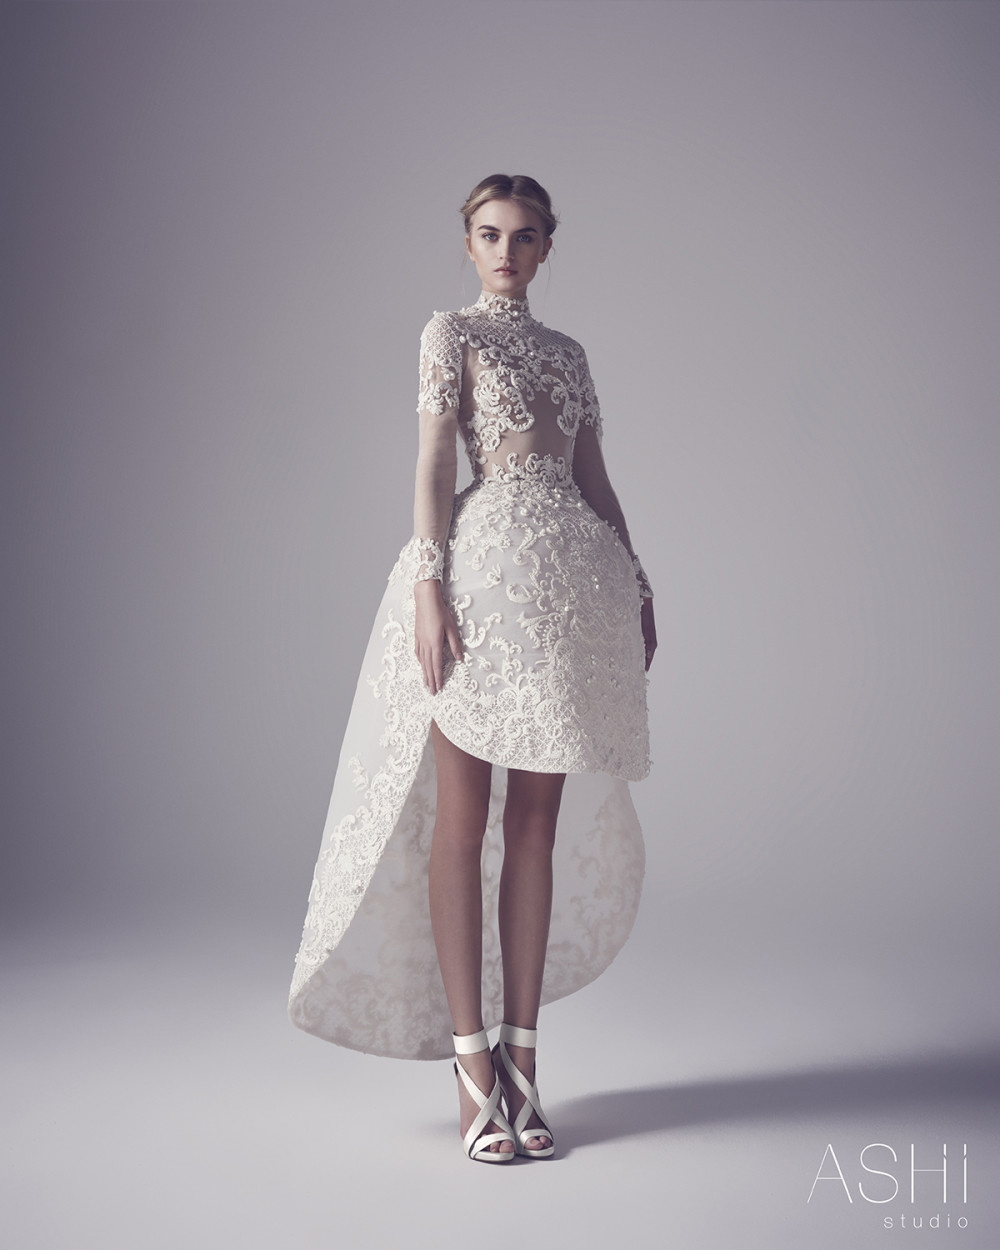 Ashi Studio_Spring Summer 2016 Couture Collection_BellaNaija Weddings_Ashi_04-050_large